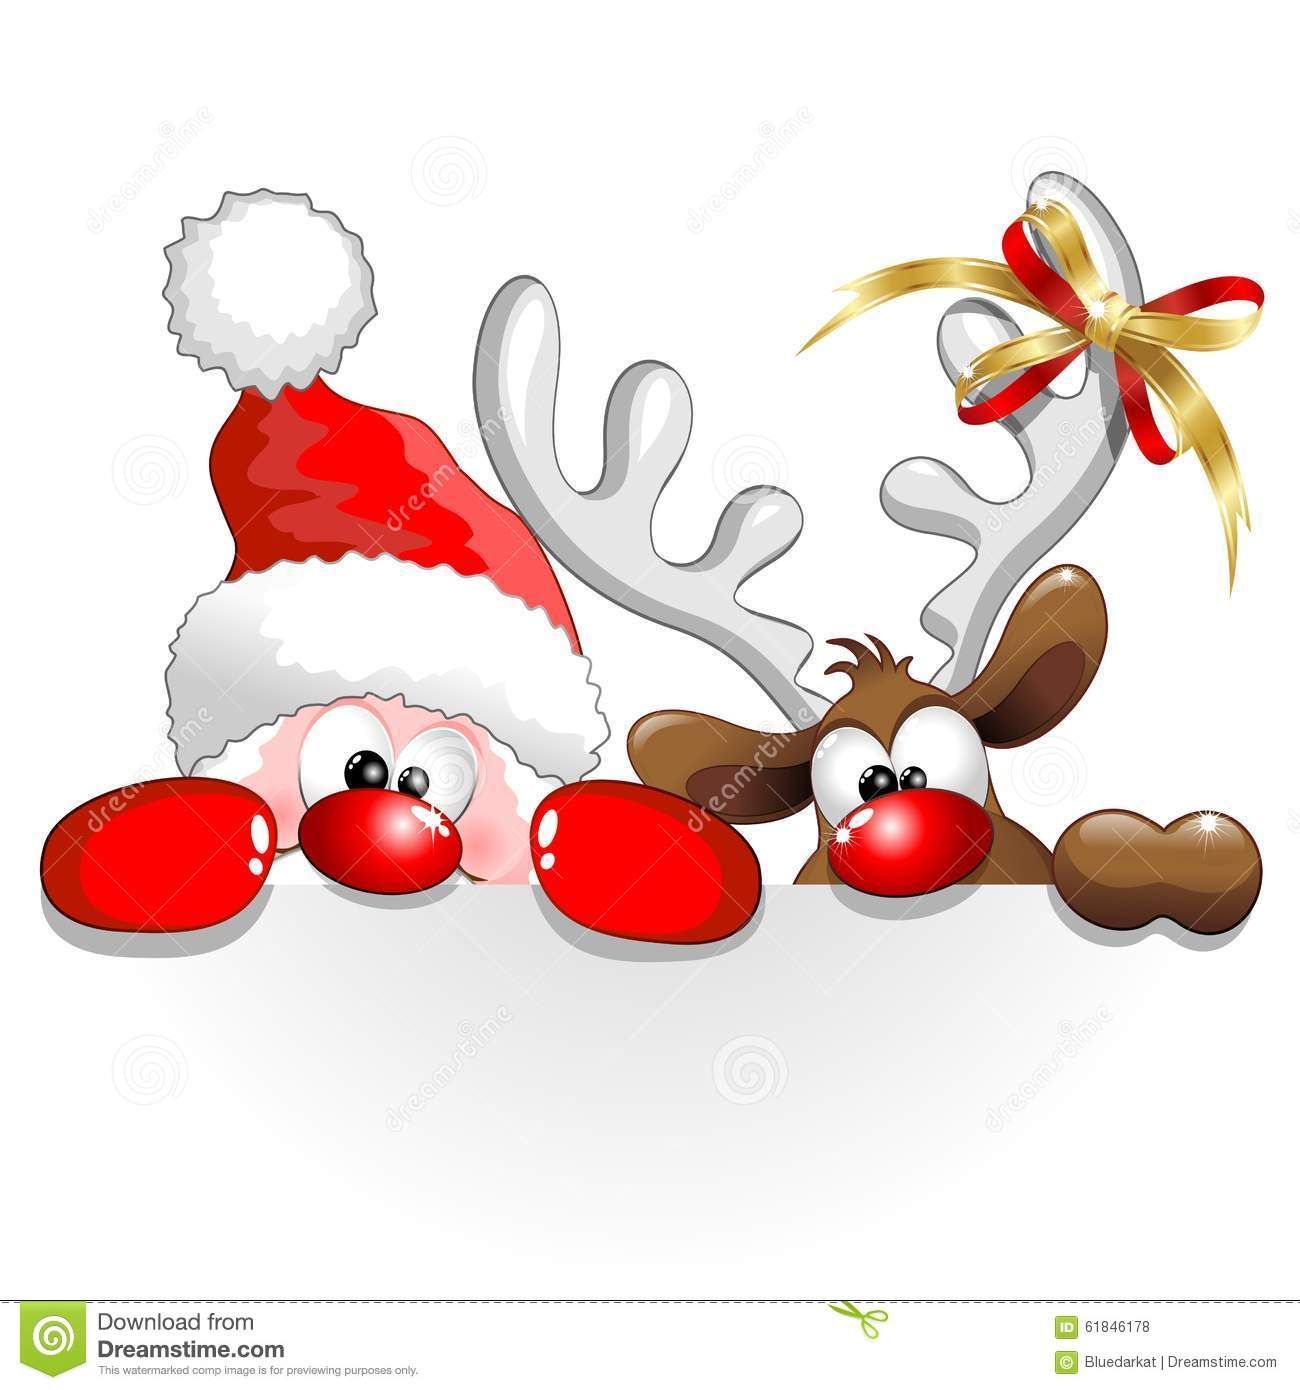 Christmas Santa And Reindeer Fun Cartoon - Download From Over 70 ...